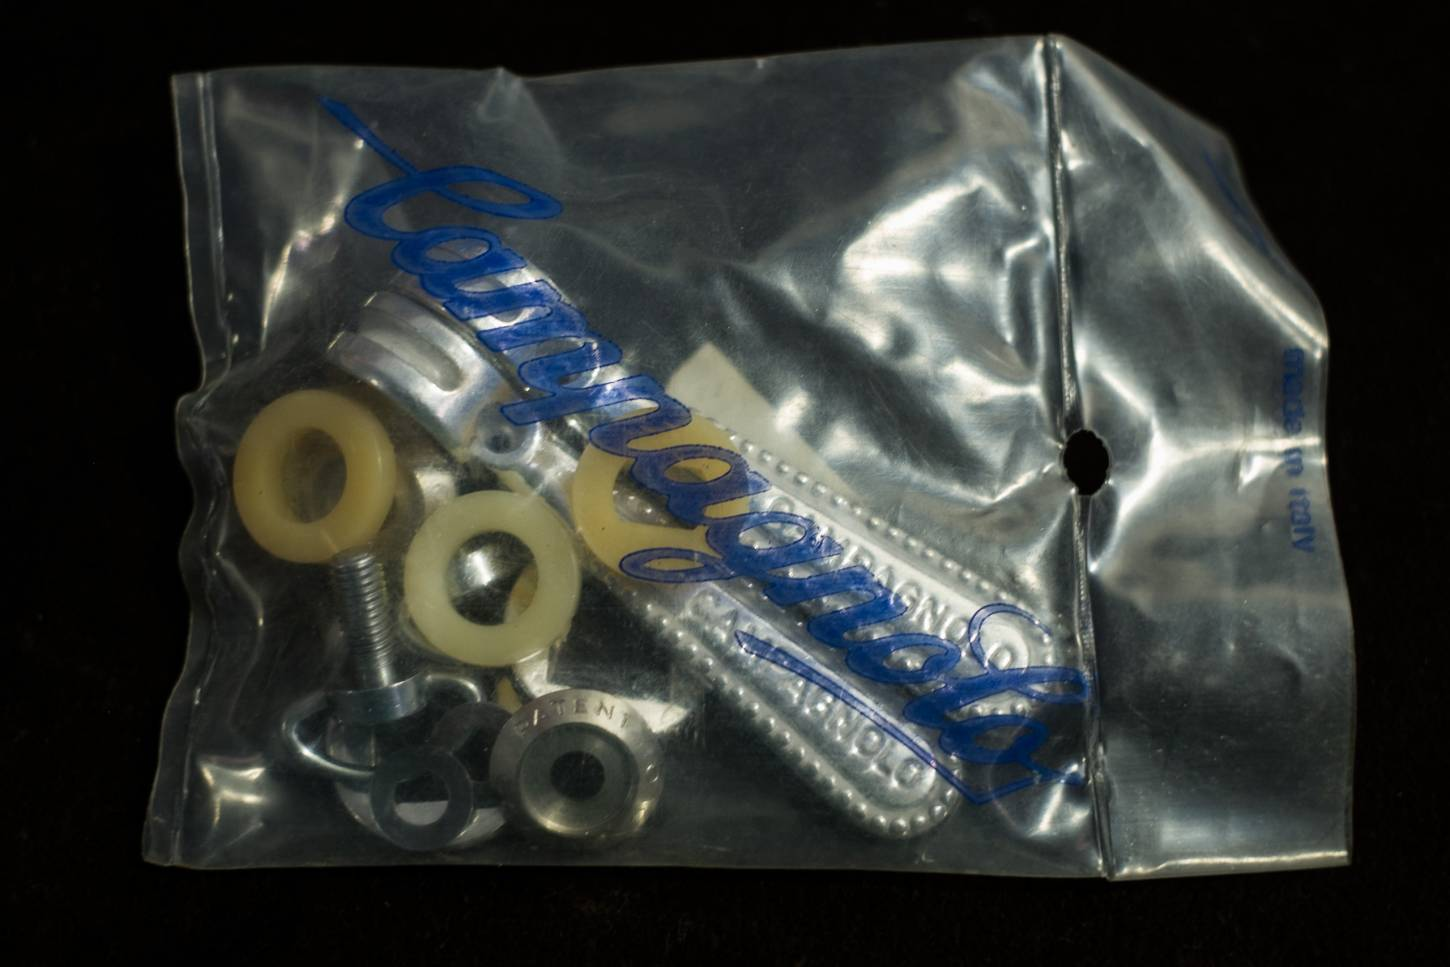 NOS Campagnolo Nuovo Record Shifters Down Tube Schalthebel